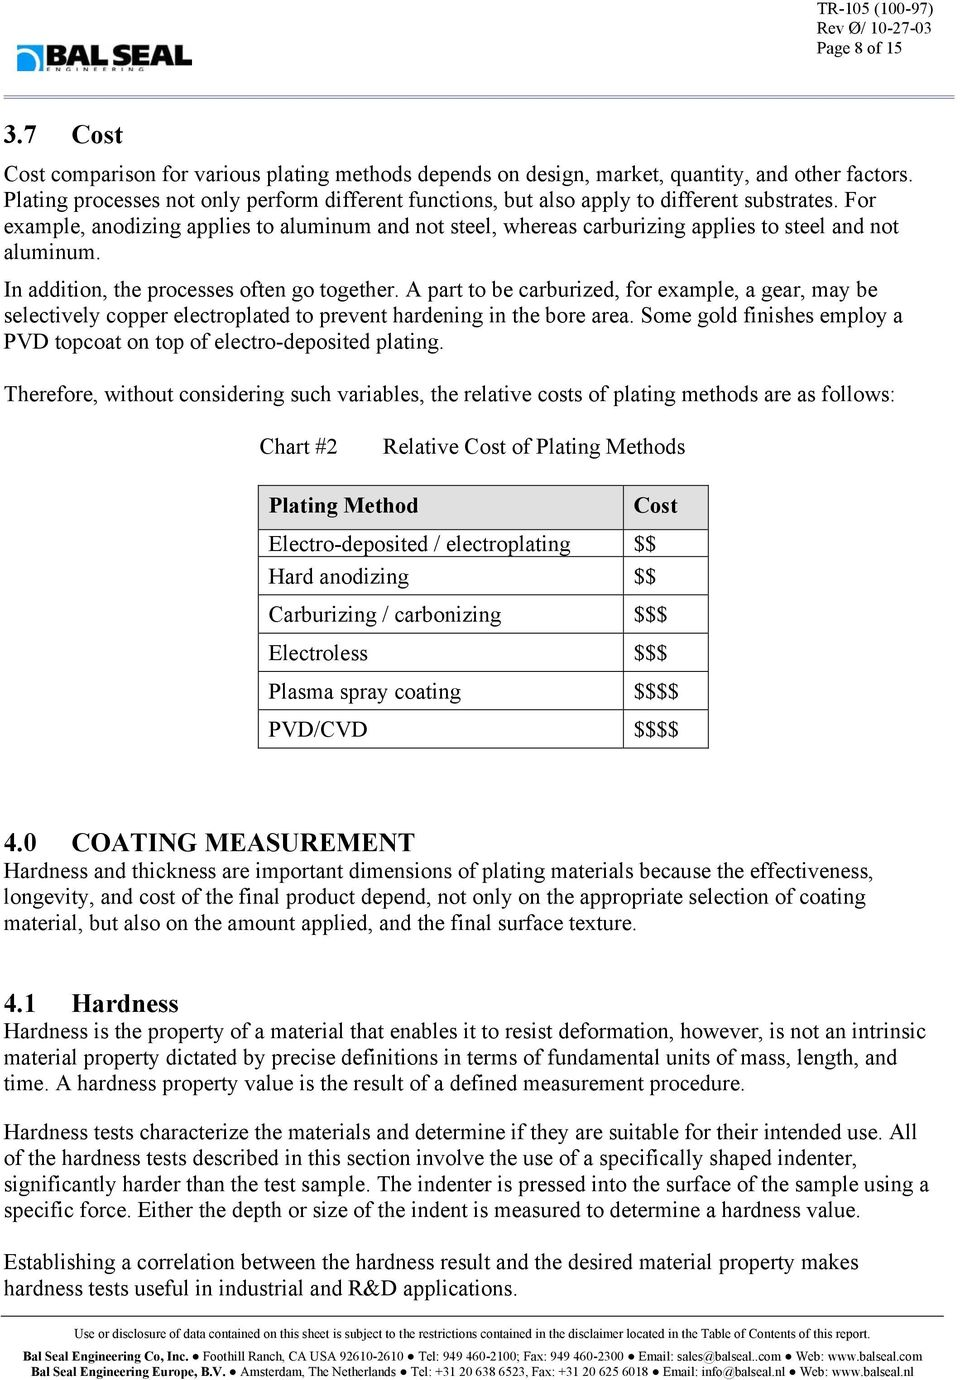 METAL PLATING PROCESSES AND METHODS OF MEASURING SURFACE HARDNESS